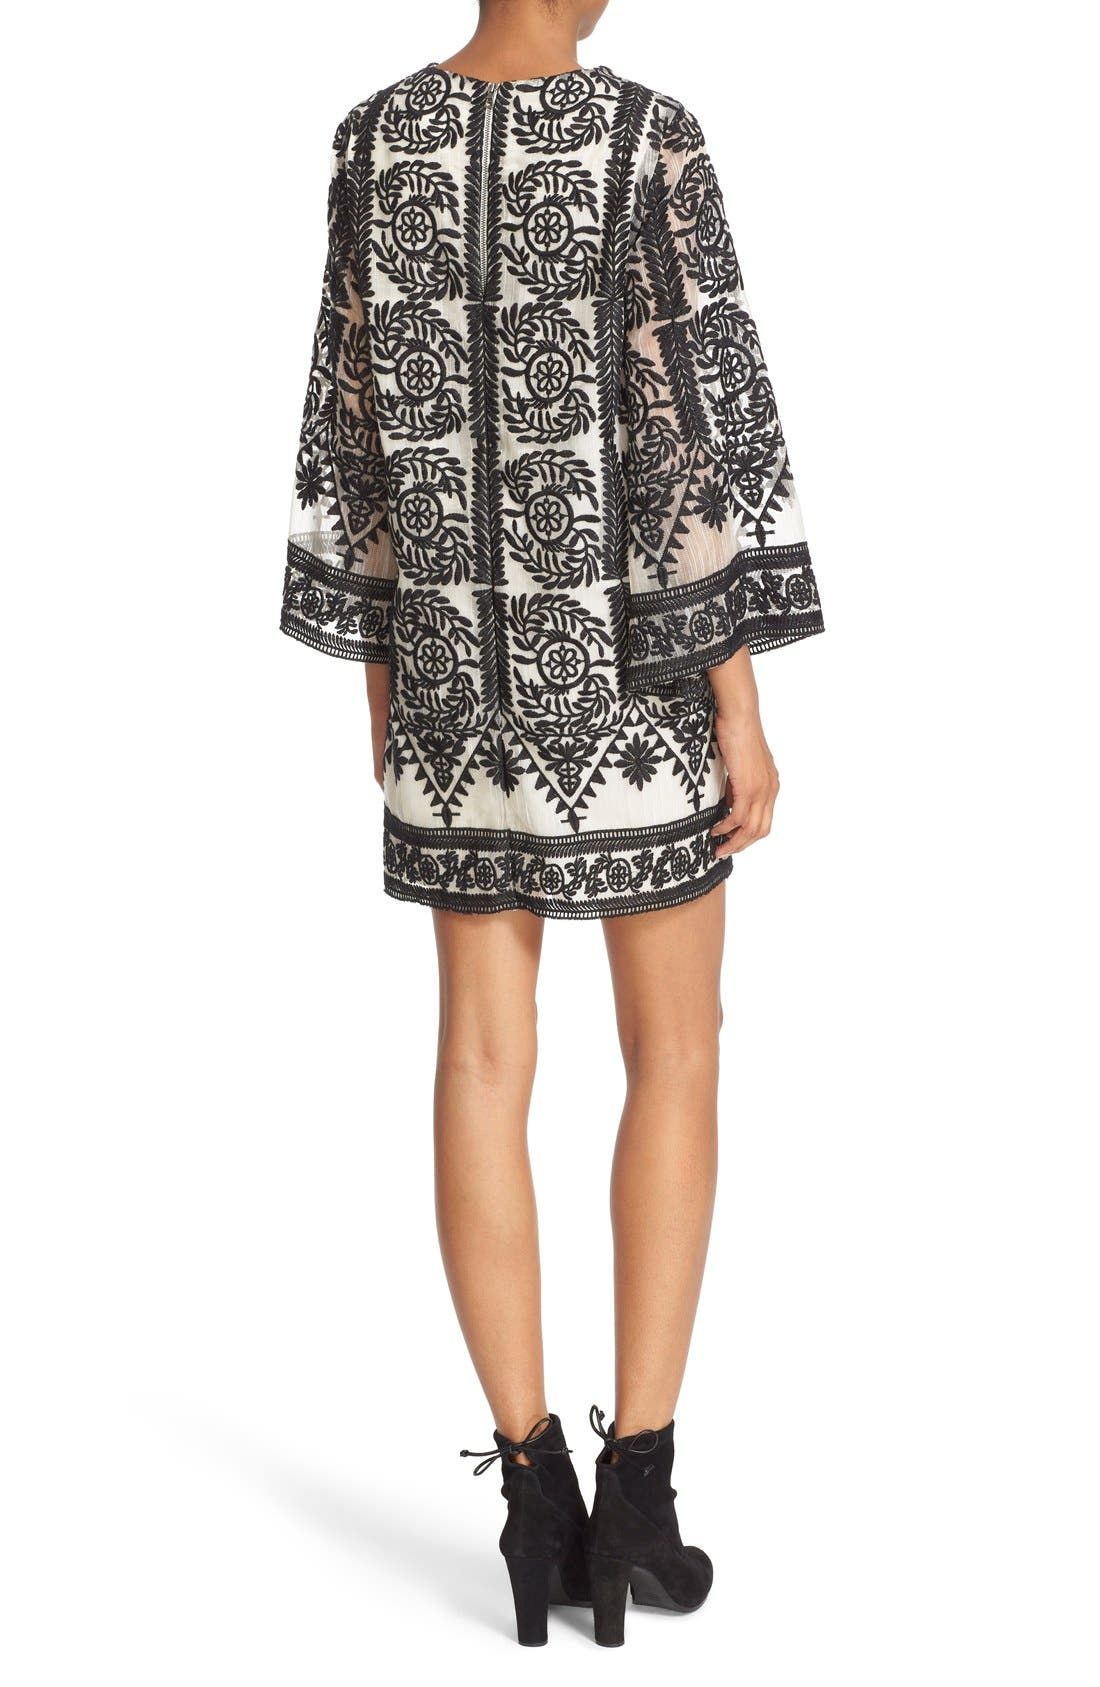 ALICE + OLIVIA, 'Katt' Print V-Neck Caftan Minidress, Alternate thumbnail 4, color, 001